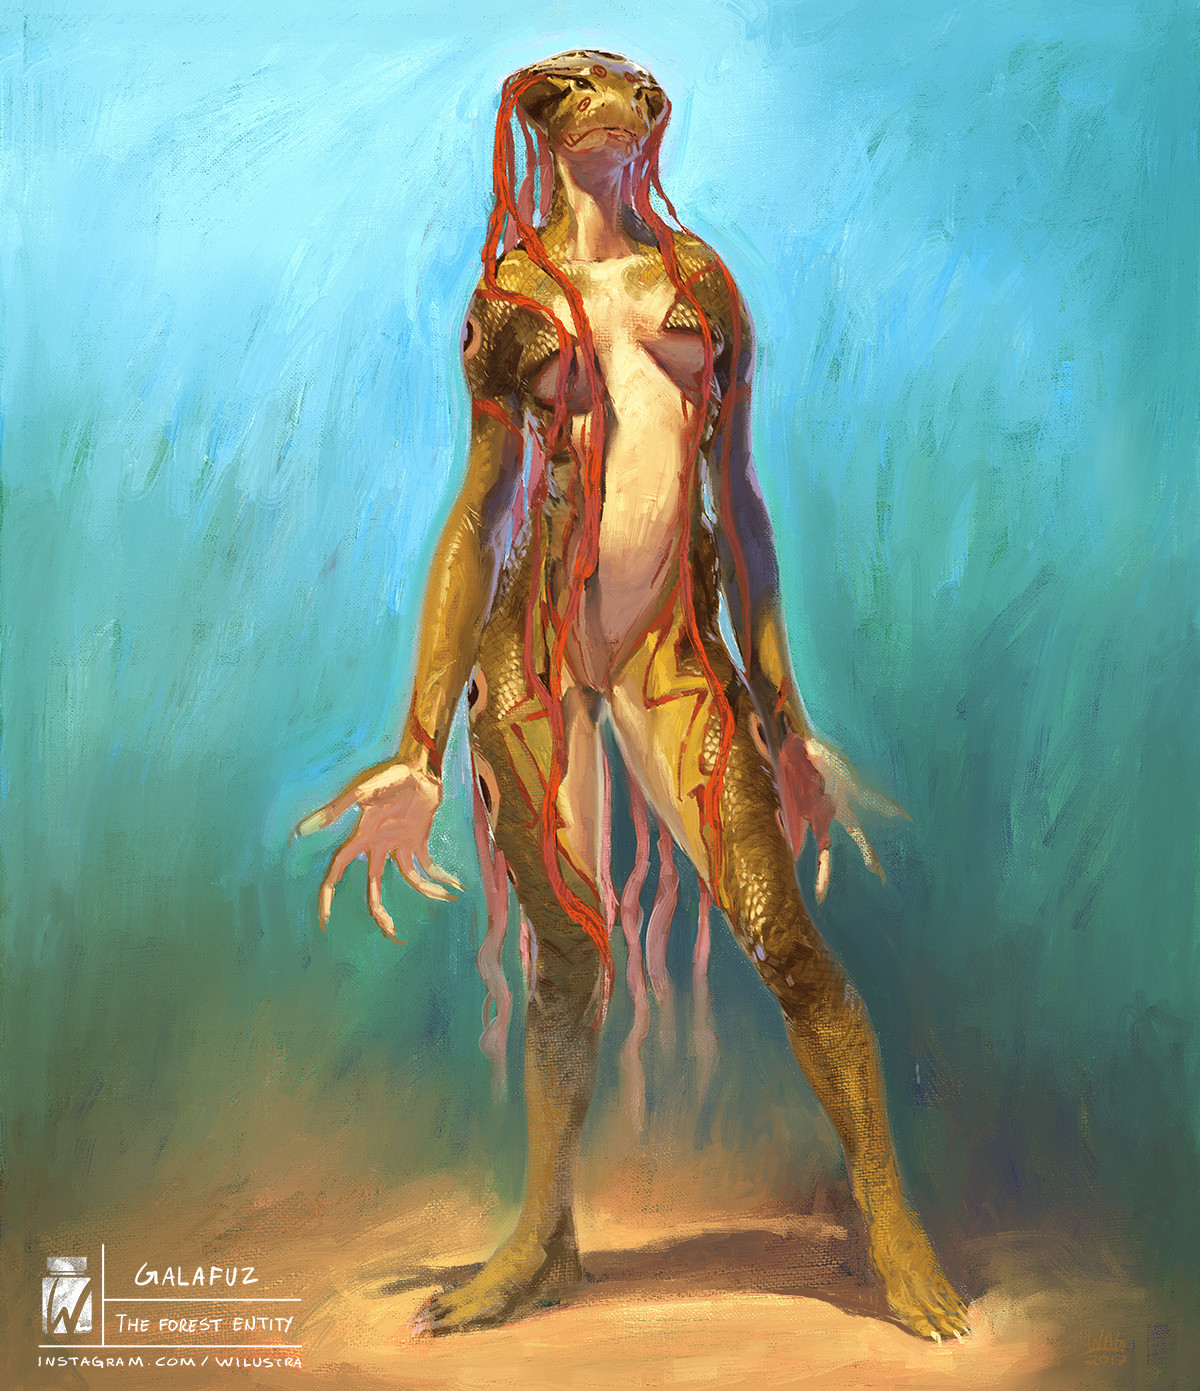 Galafuz the forest entity